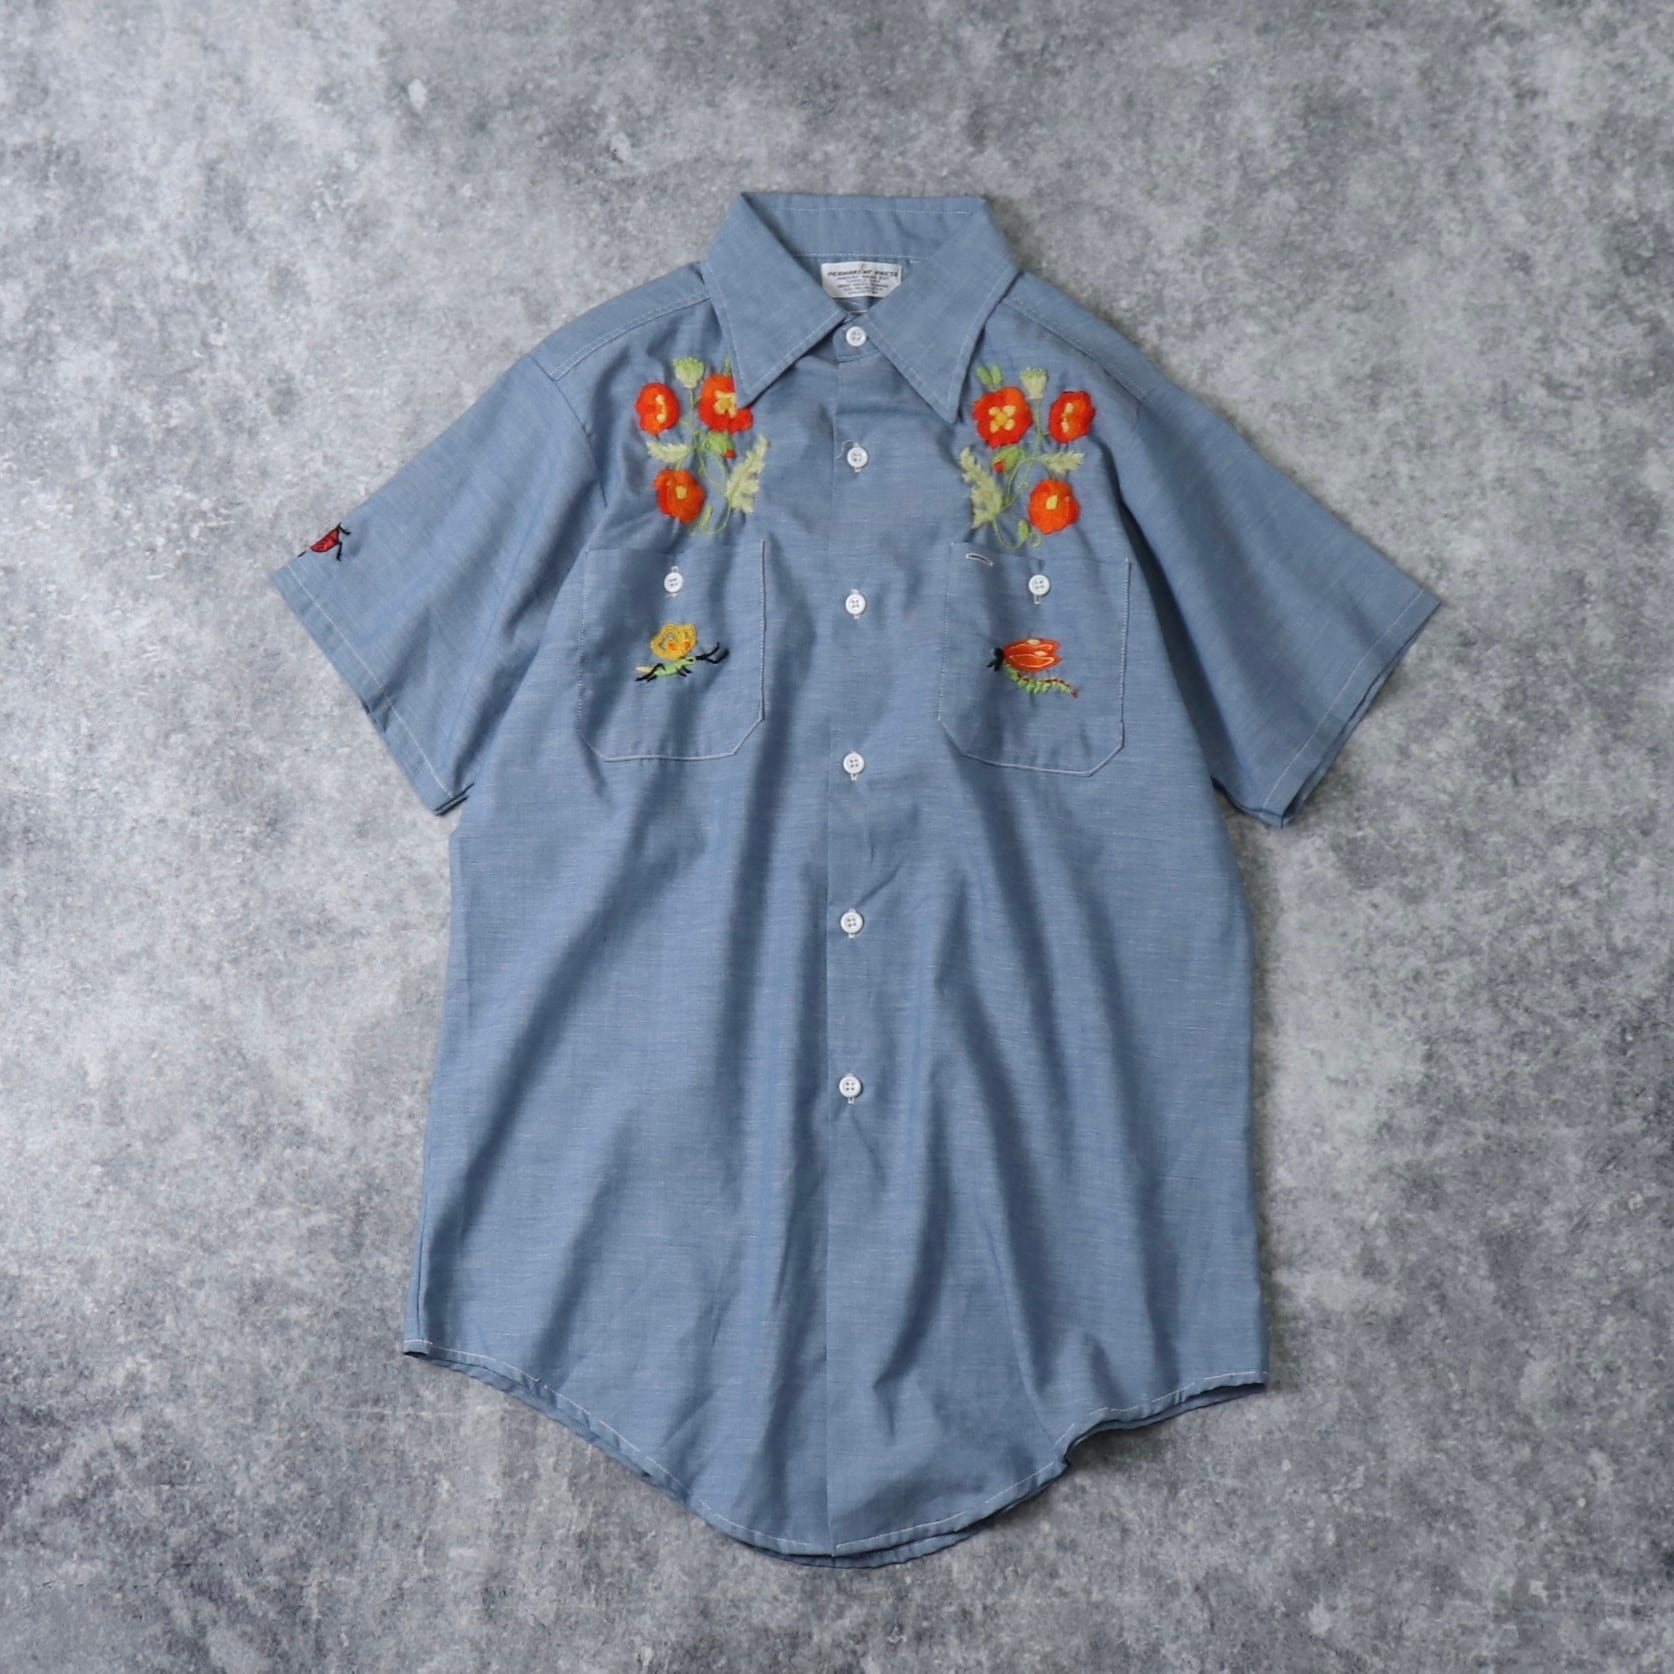 1970s    S/S    Embroidery   Design    Shirts A414